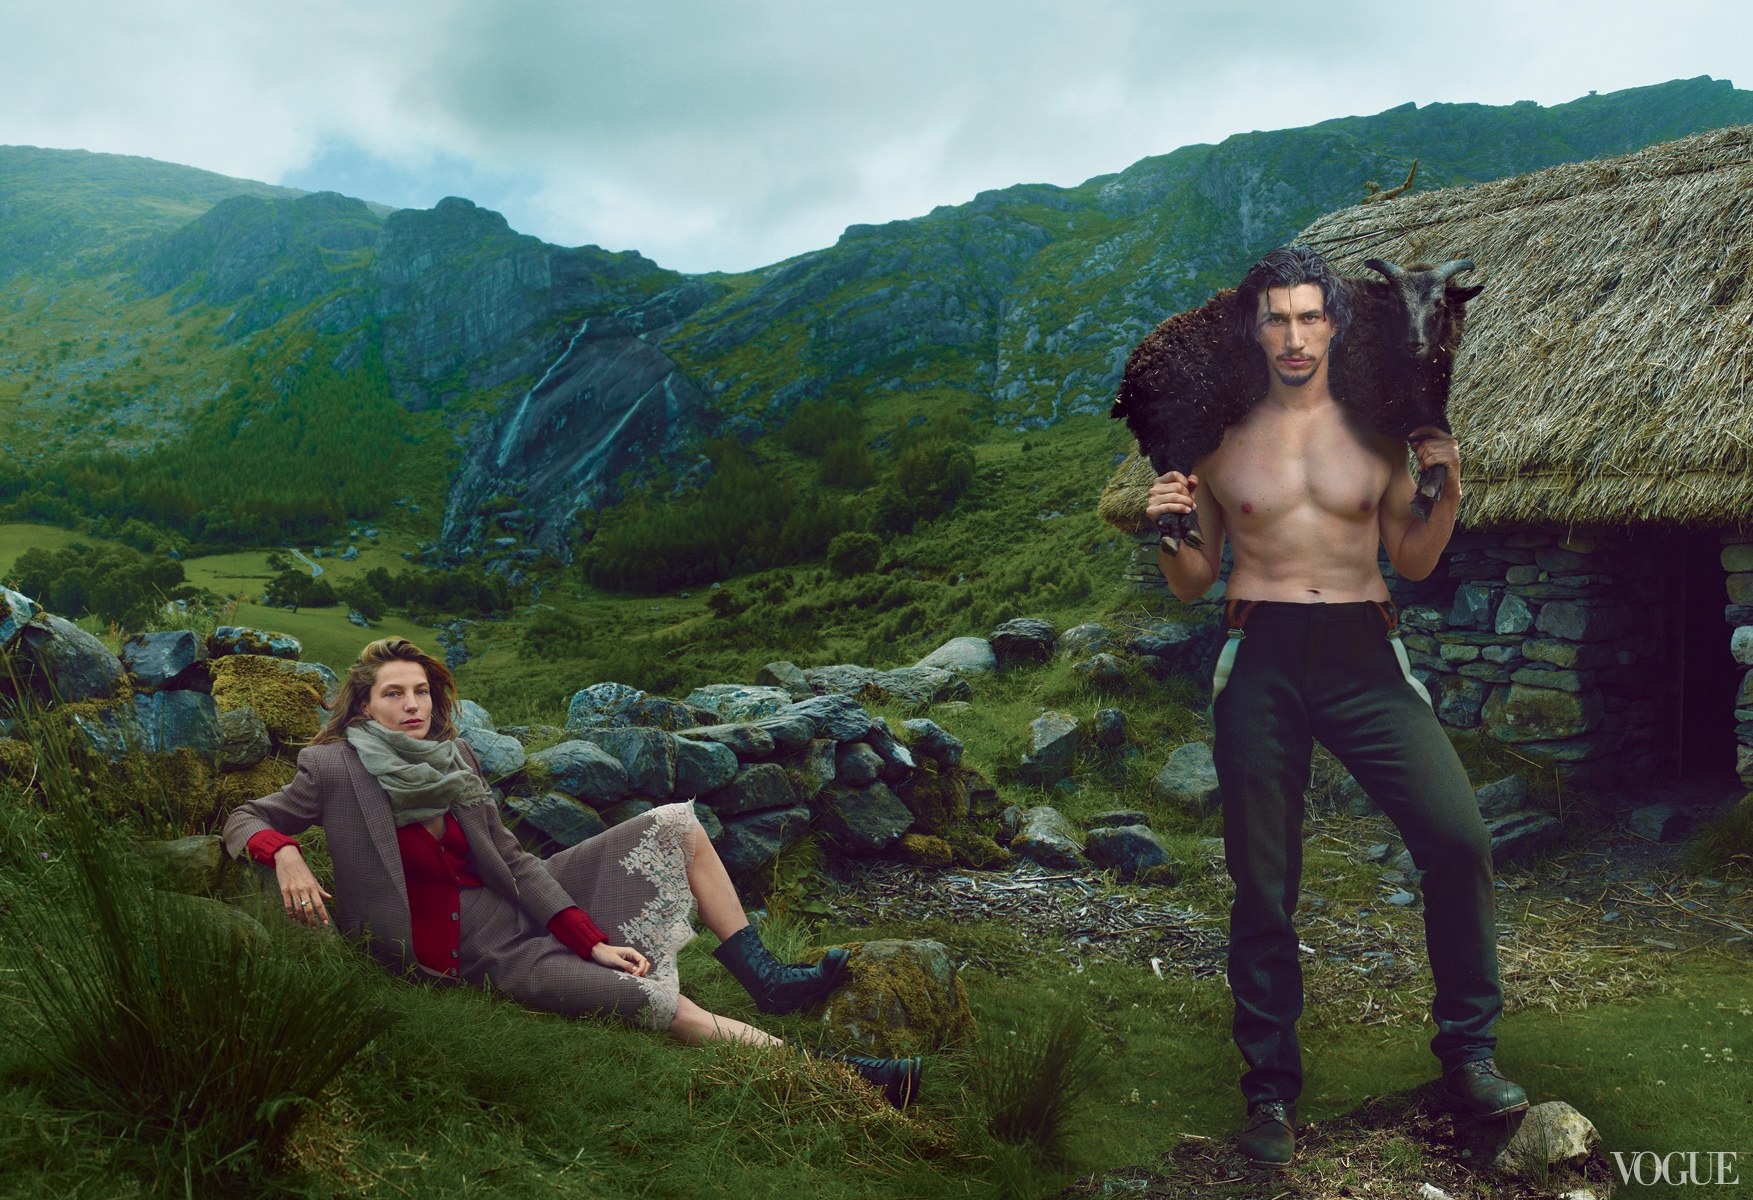 A Vogue photoshoot featuring a shirtless Adam Driver carrying a fluffy ram against a backdrop of mountains.